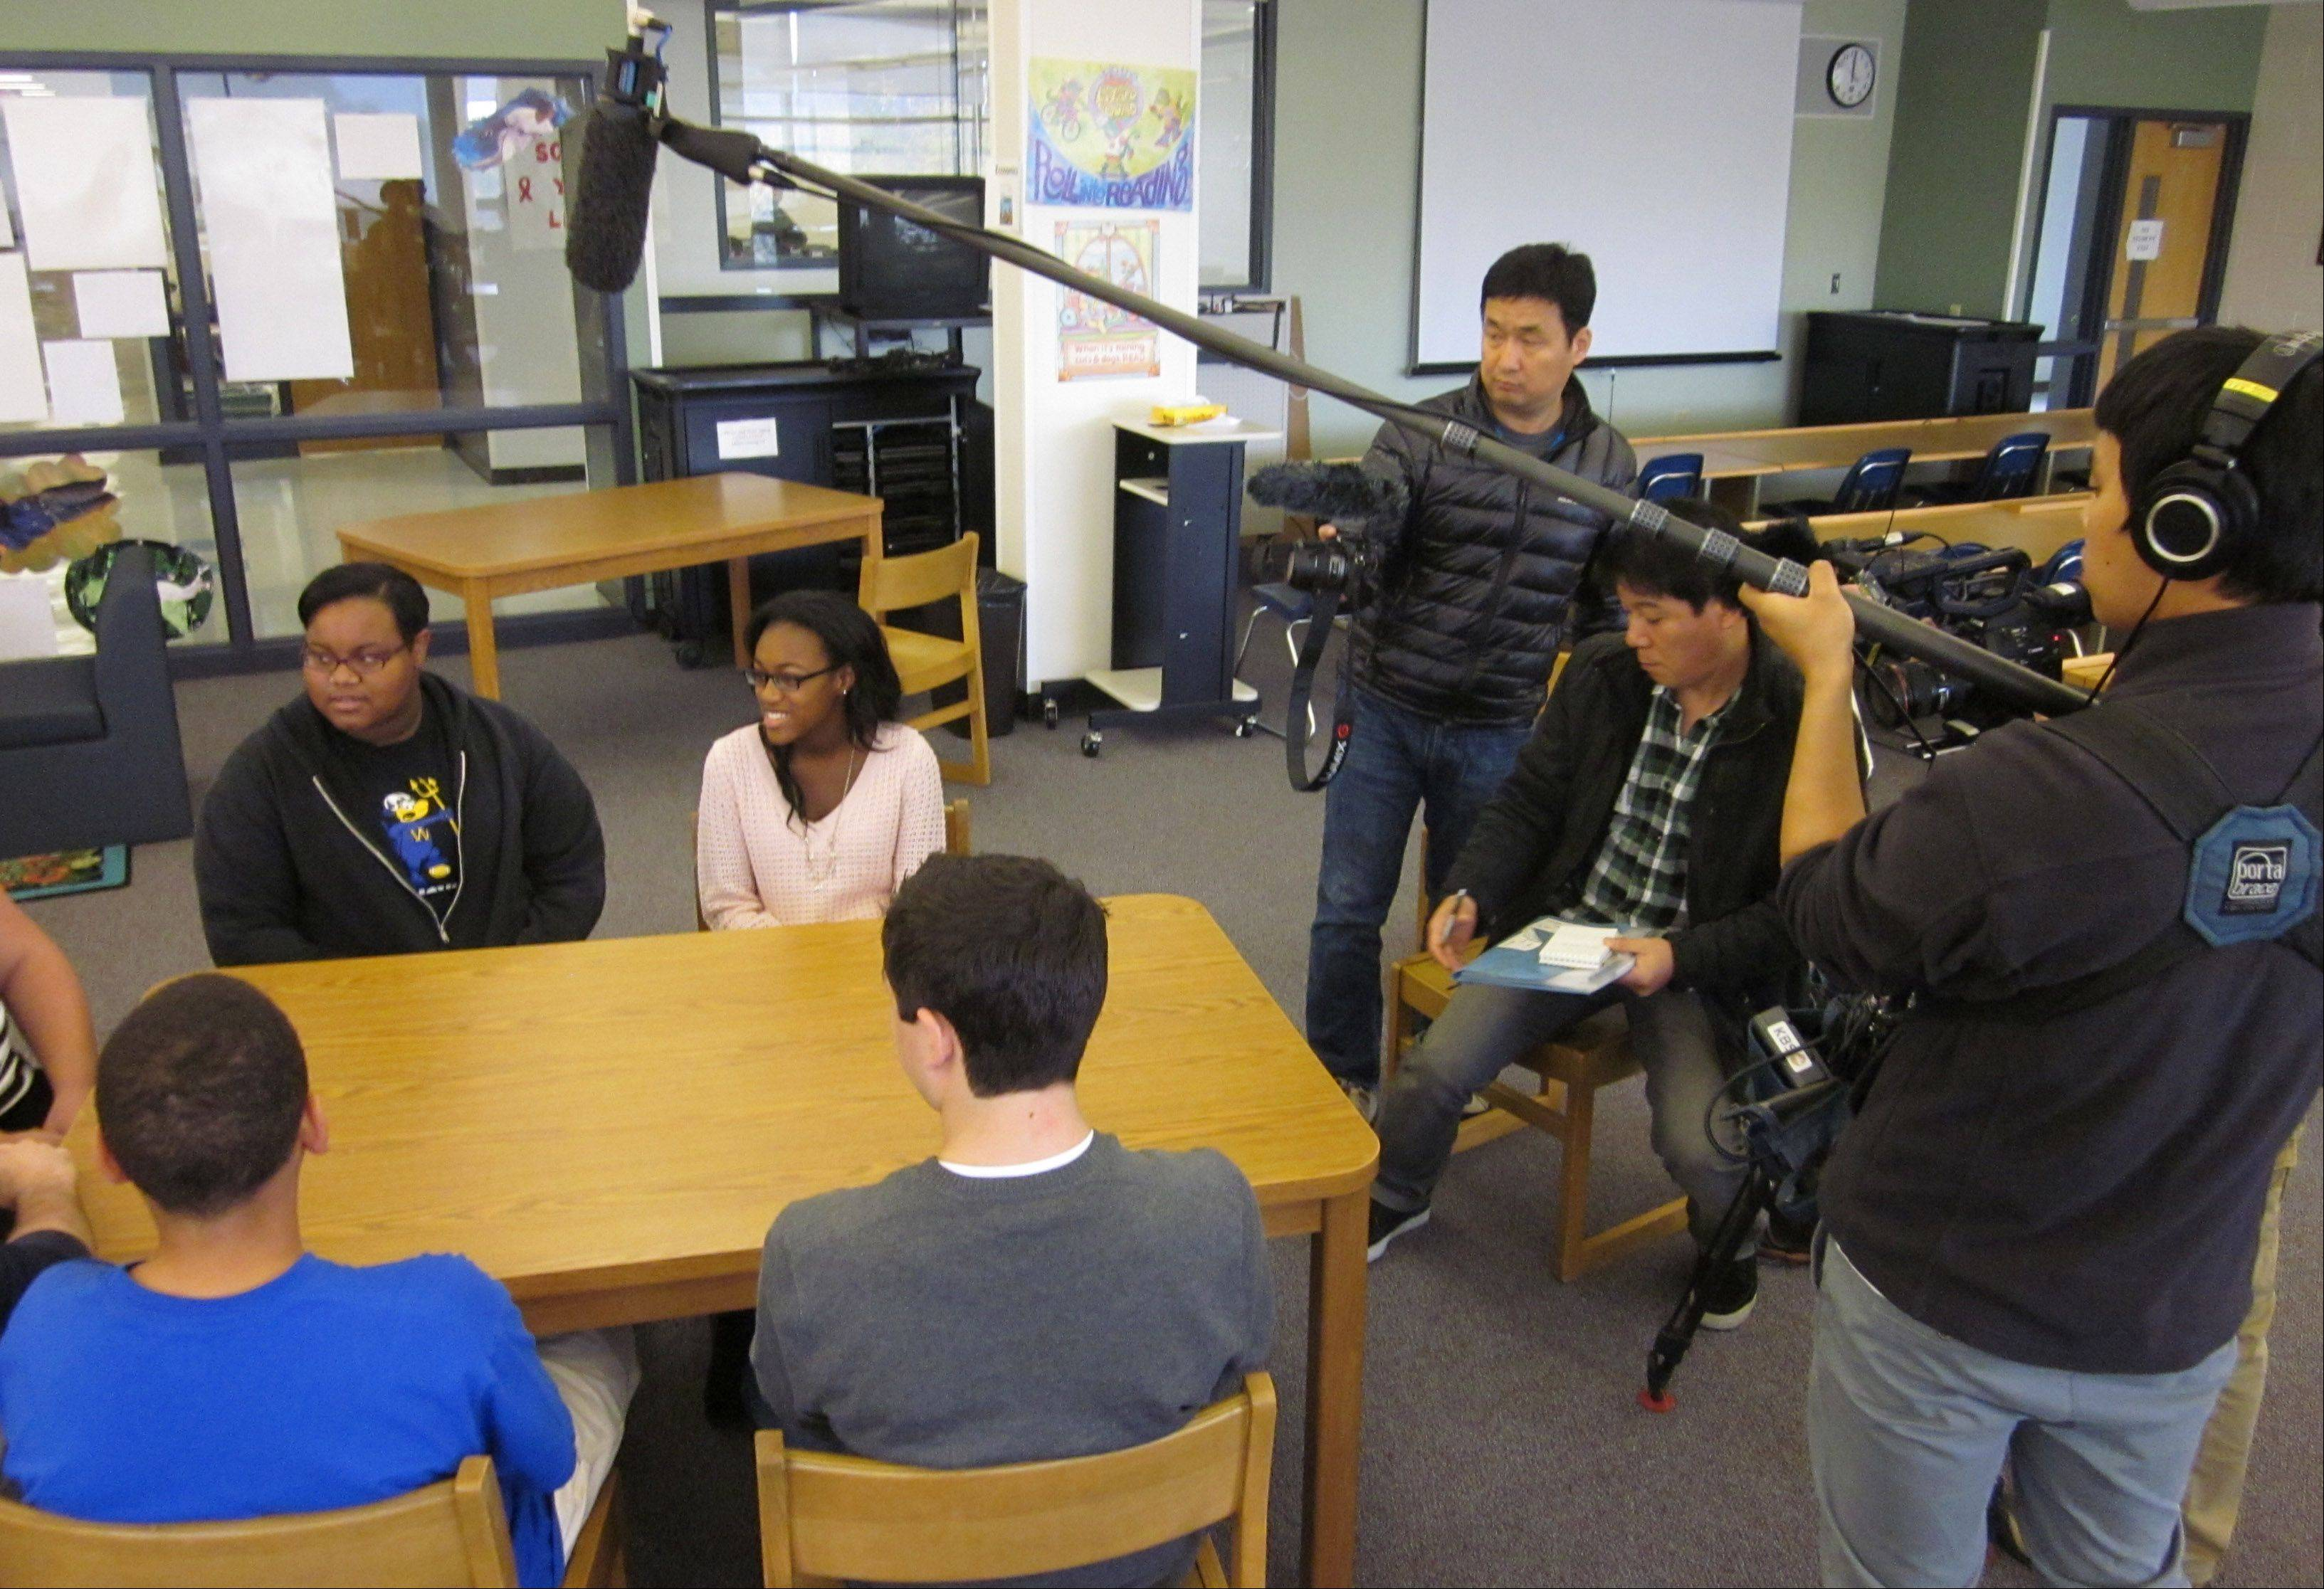 Five freshmen at Warren Township High School's O'Plaine Road campus in Gurnee on Tuesday discuss an innovative teaching method known as a flipped classroom for Korean Broadcasting System's education documentary.